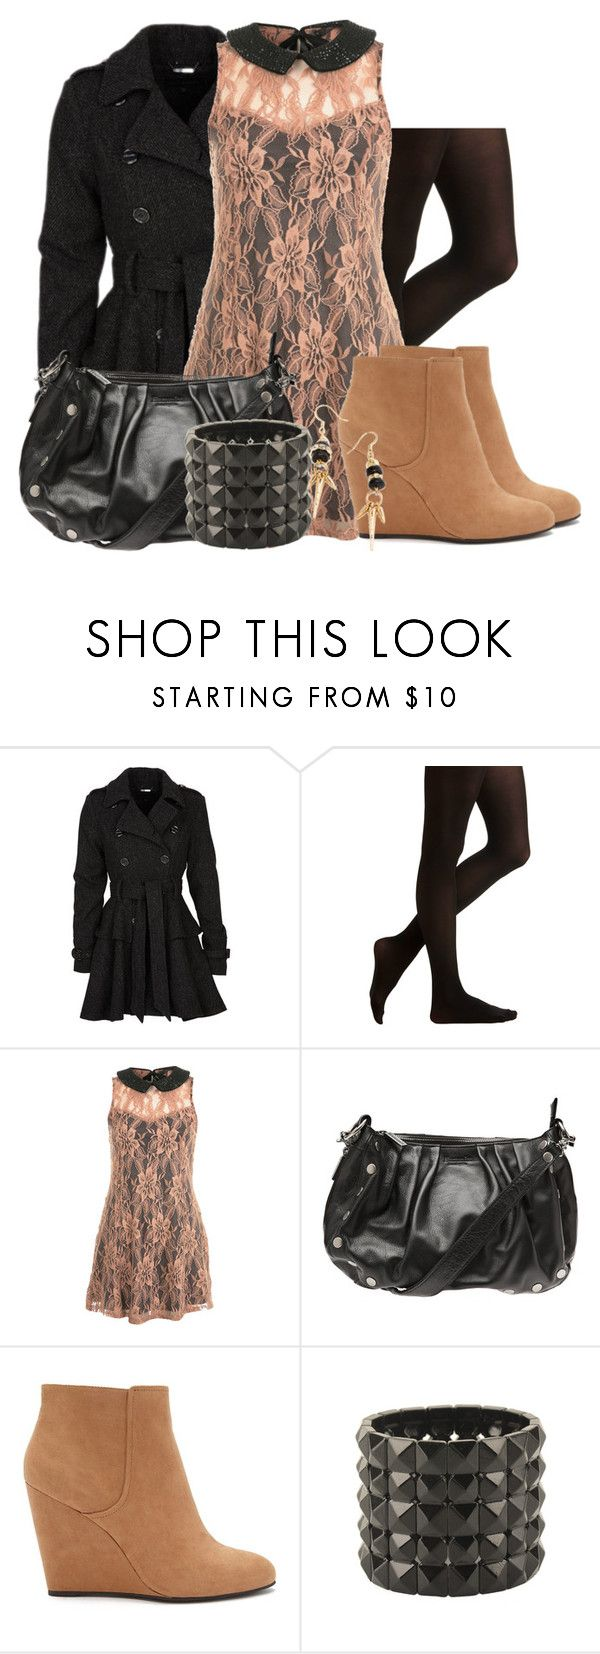 """""""Glee: Piper Mercer"""" by grandmasfood ❤ liked on Polyvore featuring Steve Madden, Moon Collection, Miss Selfridge, Hammitt, Forever 21 and Tilly Doro"""